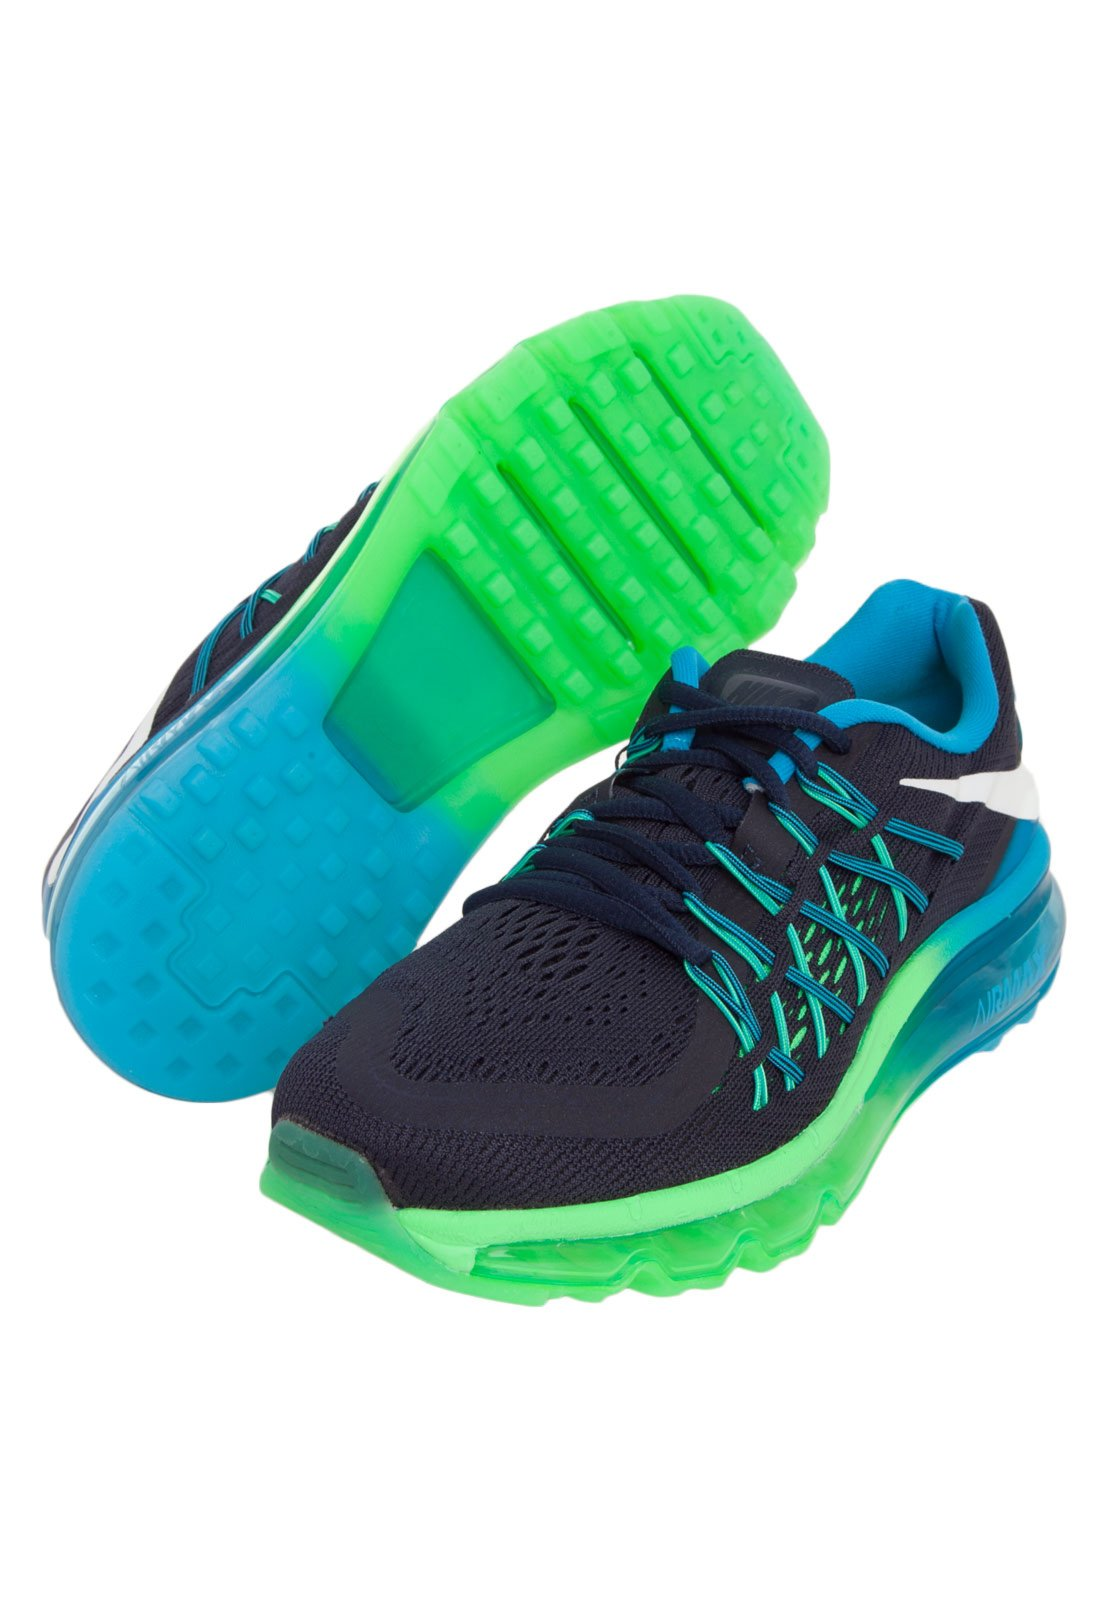 best service 833c4 48f25 ... real tenis nike air max azul e verde . 15665 b716d